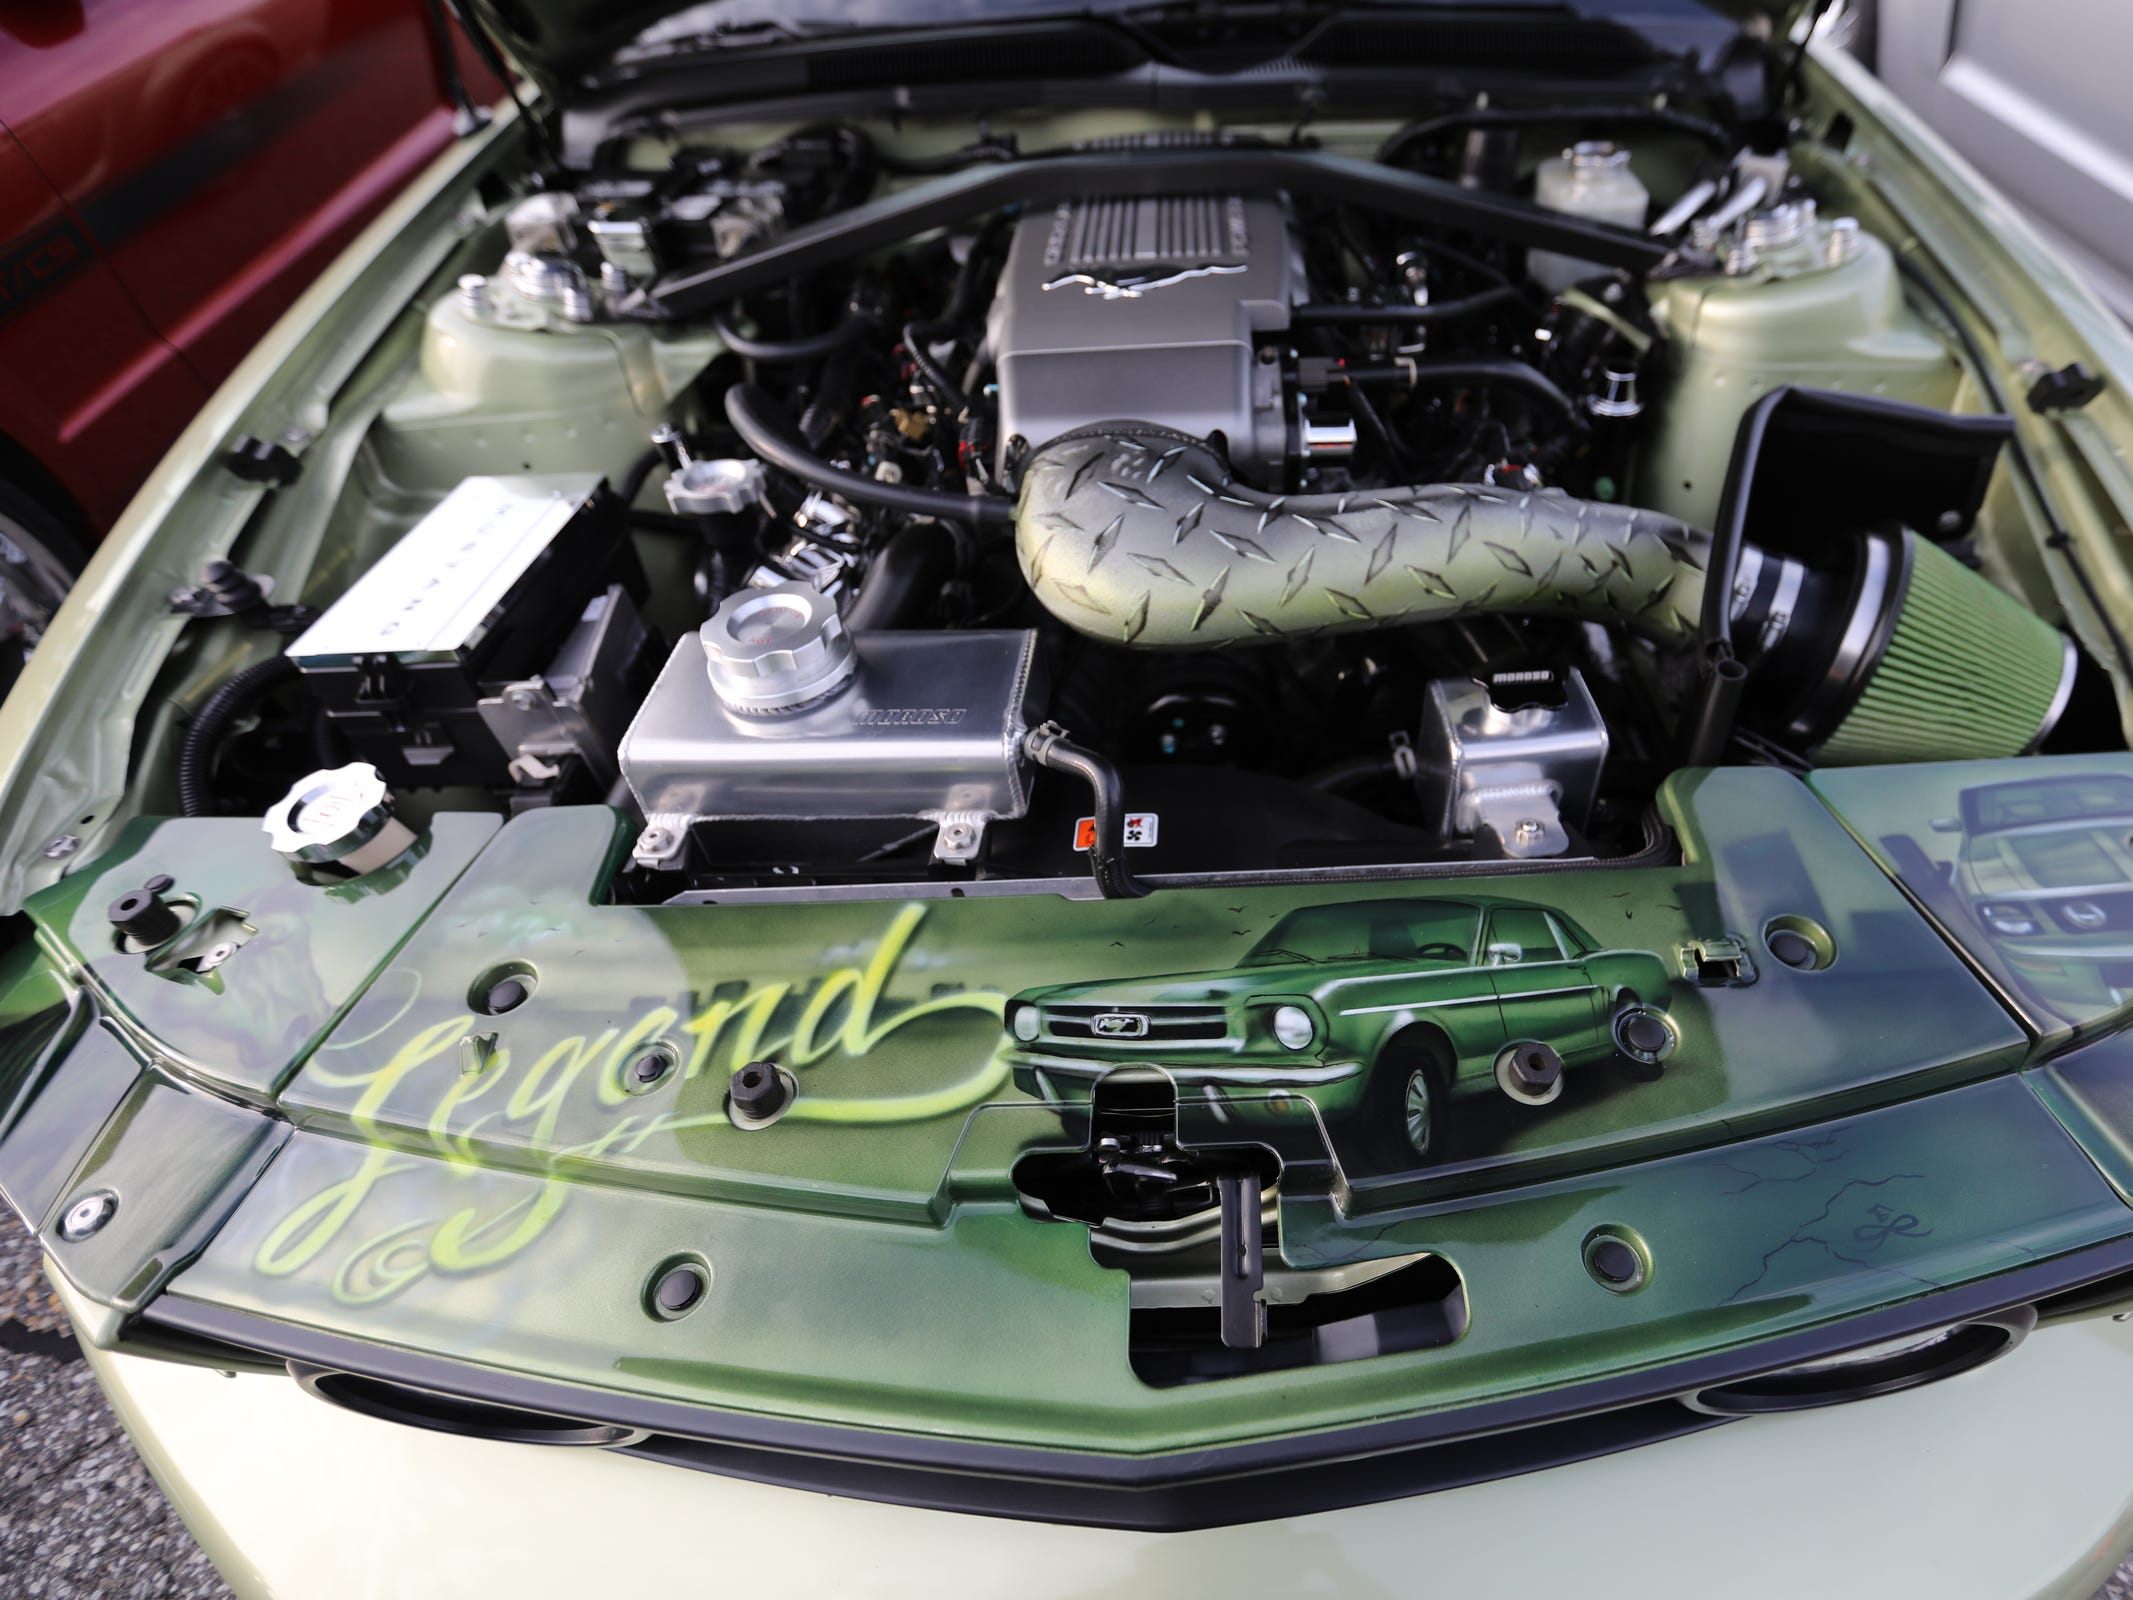 Hexbyte - Science and Tech The engine of a 2006 Ford Mustang GT convertible owned by Peter Dunbar, 63, of Detroit has a custom paint job seen at the Ford World Headquarters in Dearborn on Wednesdau, Aug 8, 2018, during an event celebrating the 10 millionth Mustang.